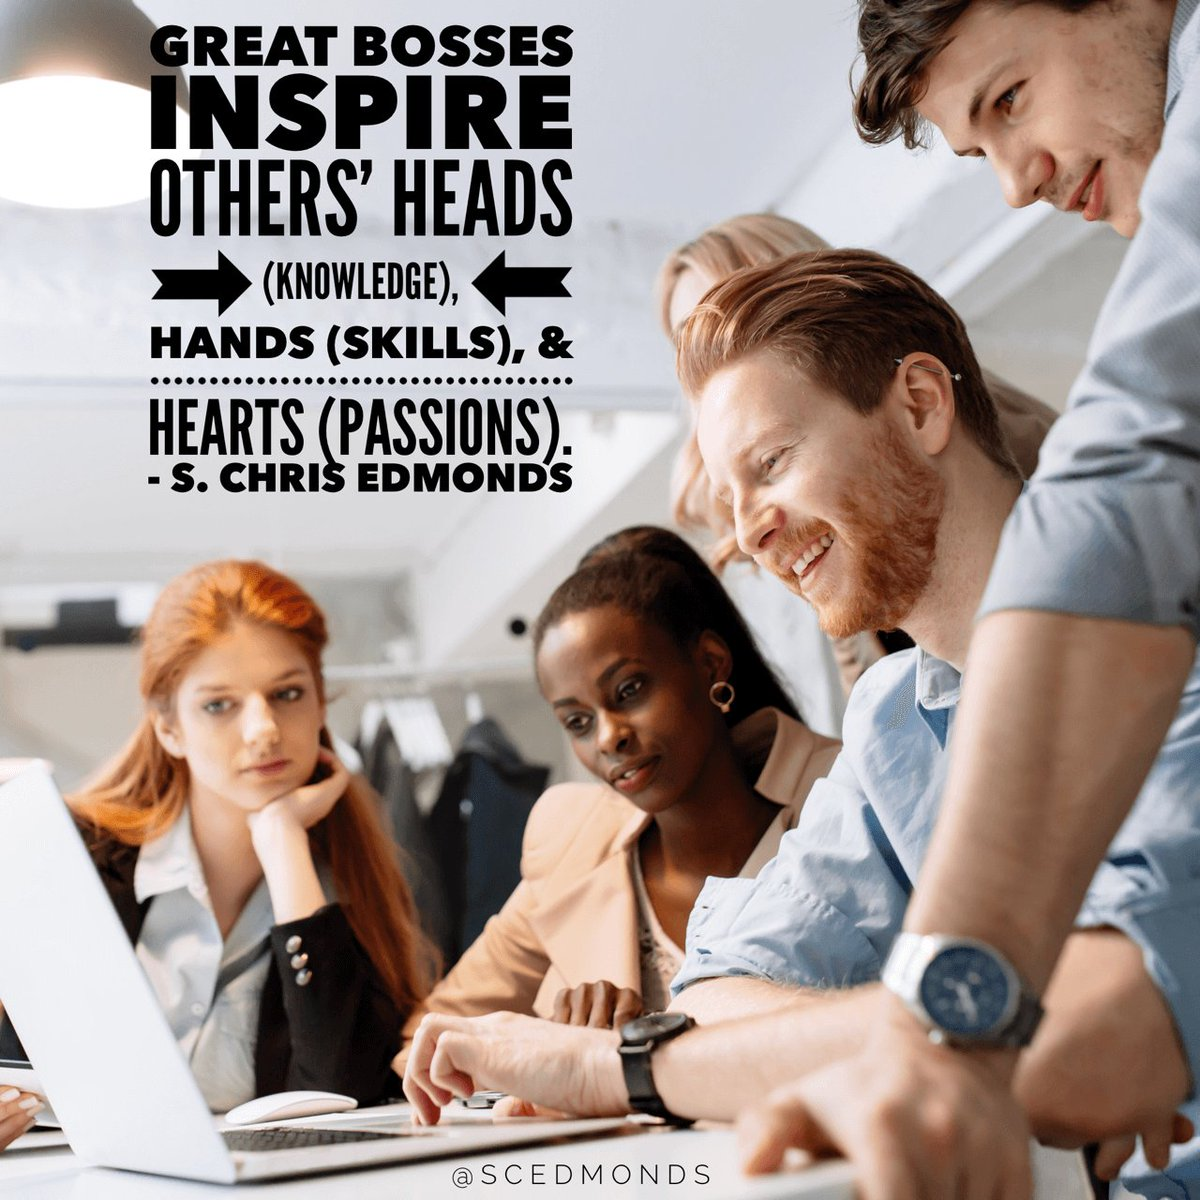 #GreatBosses inspire others' heads (knowledge), hands (skills), & hearts (passions). #Quote #Culture #Leadership https://t.co/io4Z6CFXNF